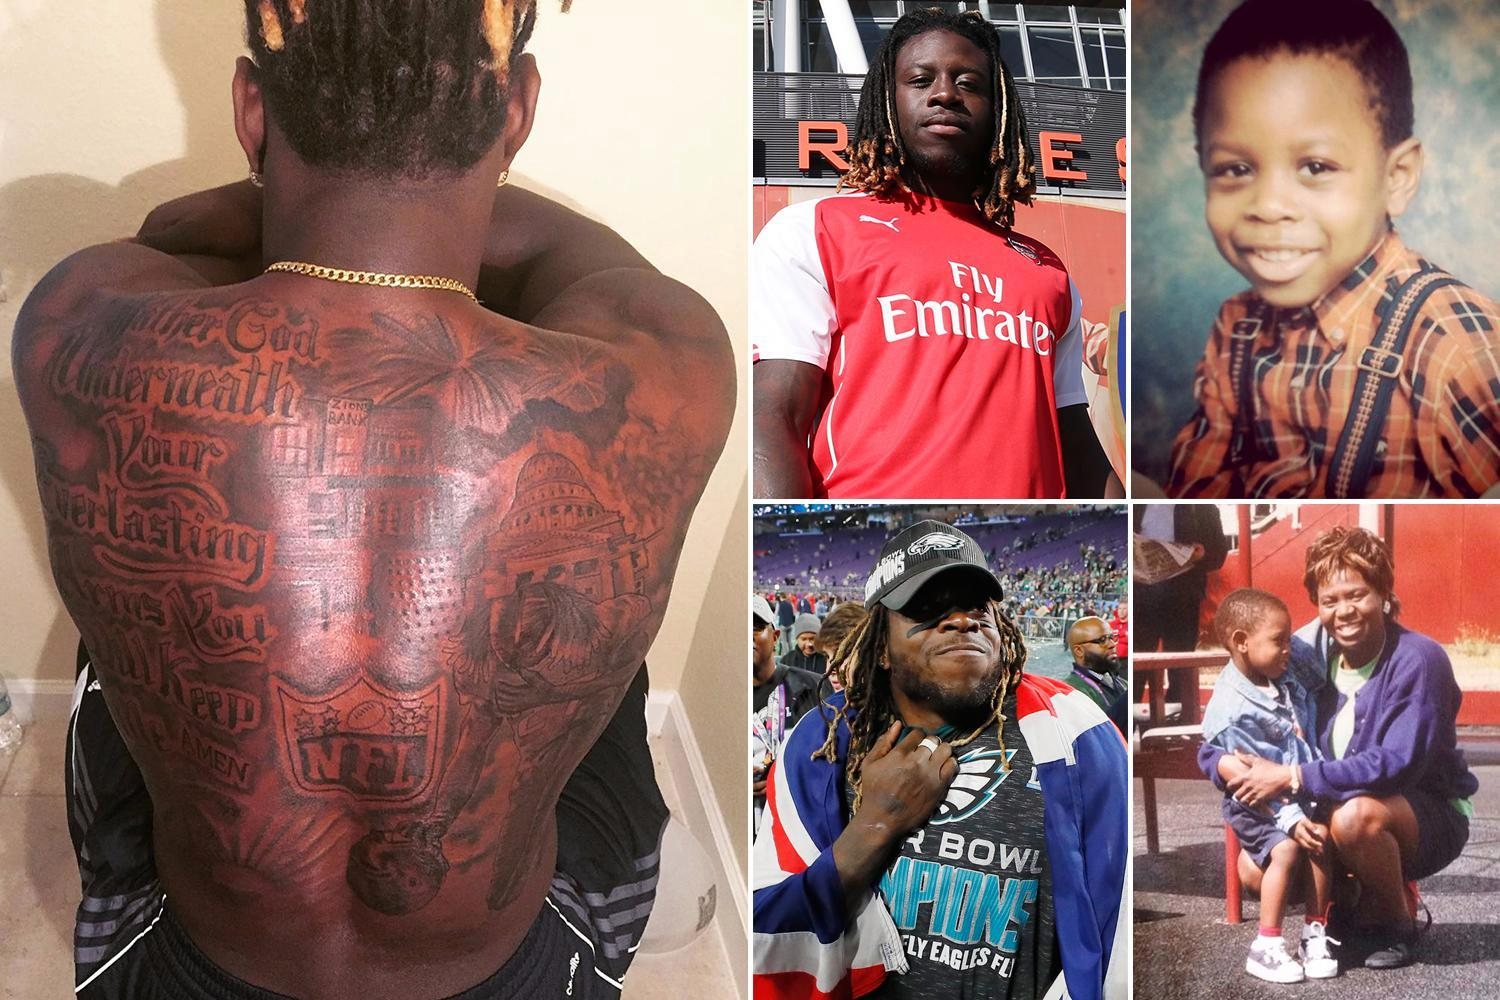 Jay Ajayi: Tattoos, Arsenal and his own 'yurp' brand – the NFL star is the most famous British sportsman you've never heard of after winning the Super Bowl with the Philadelphia Eagles